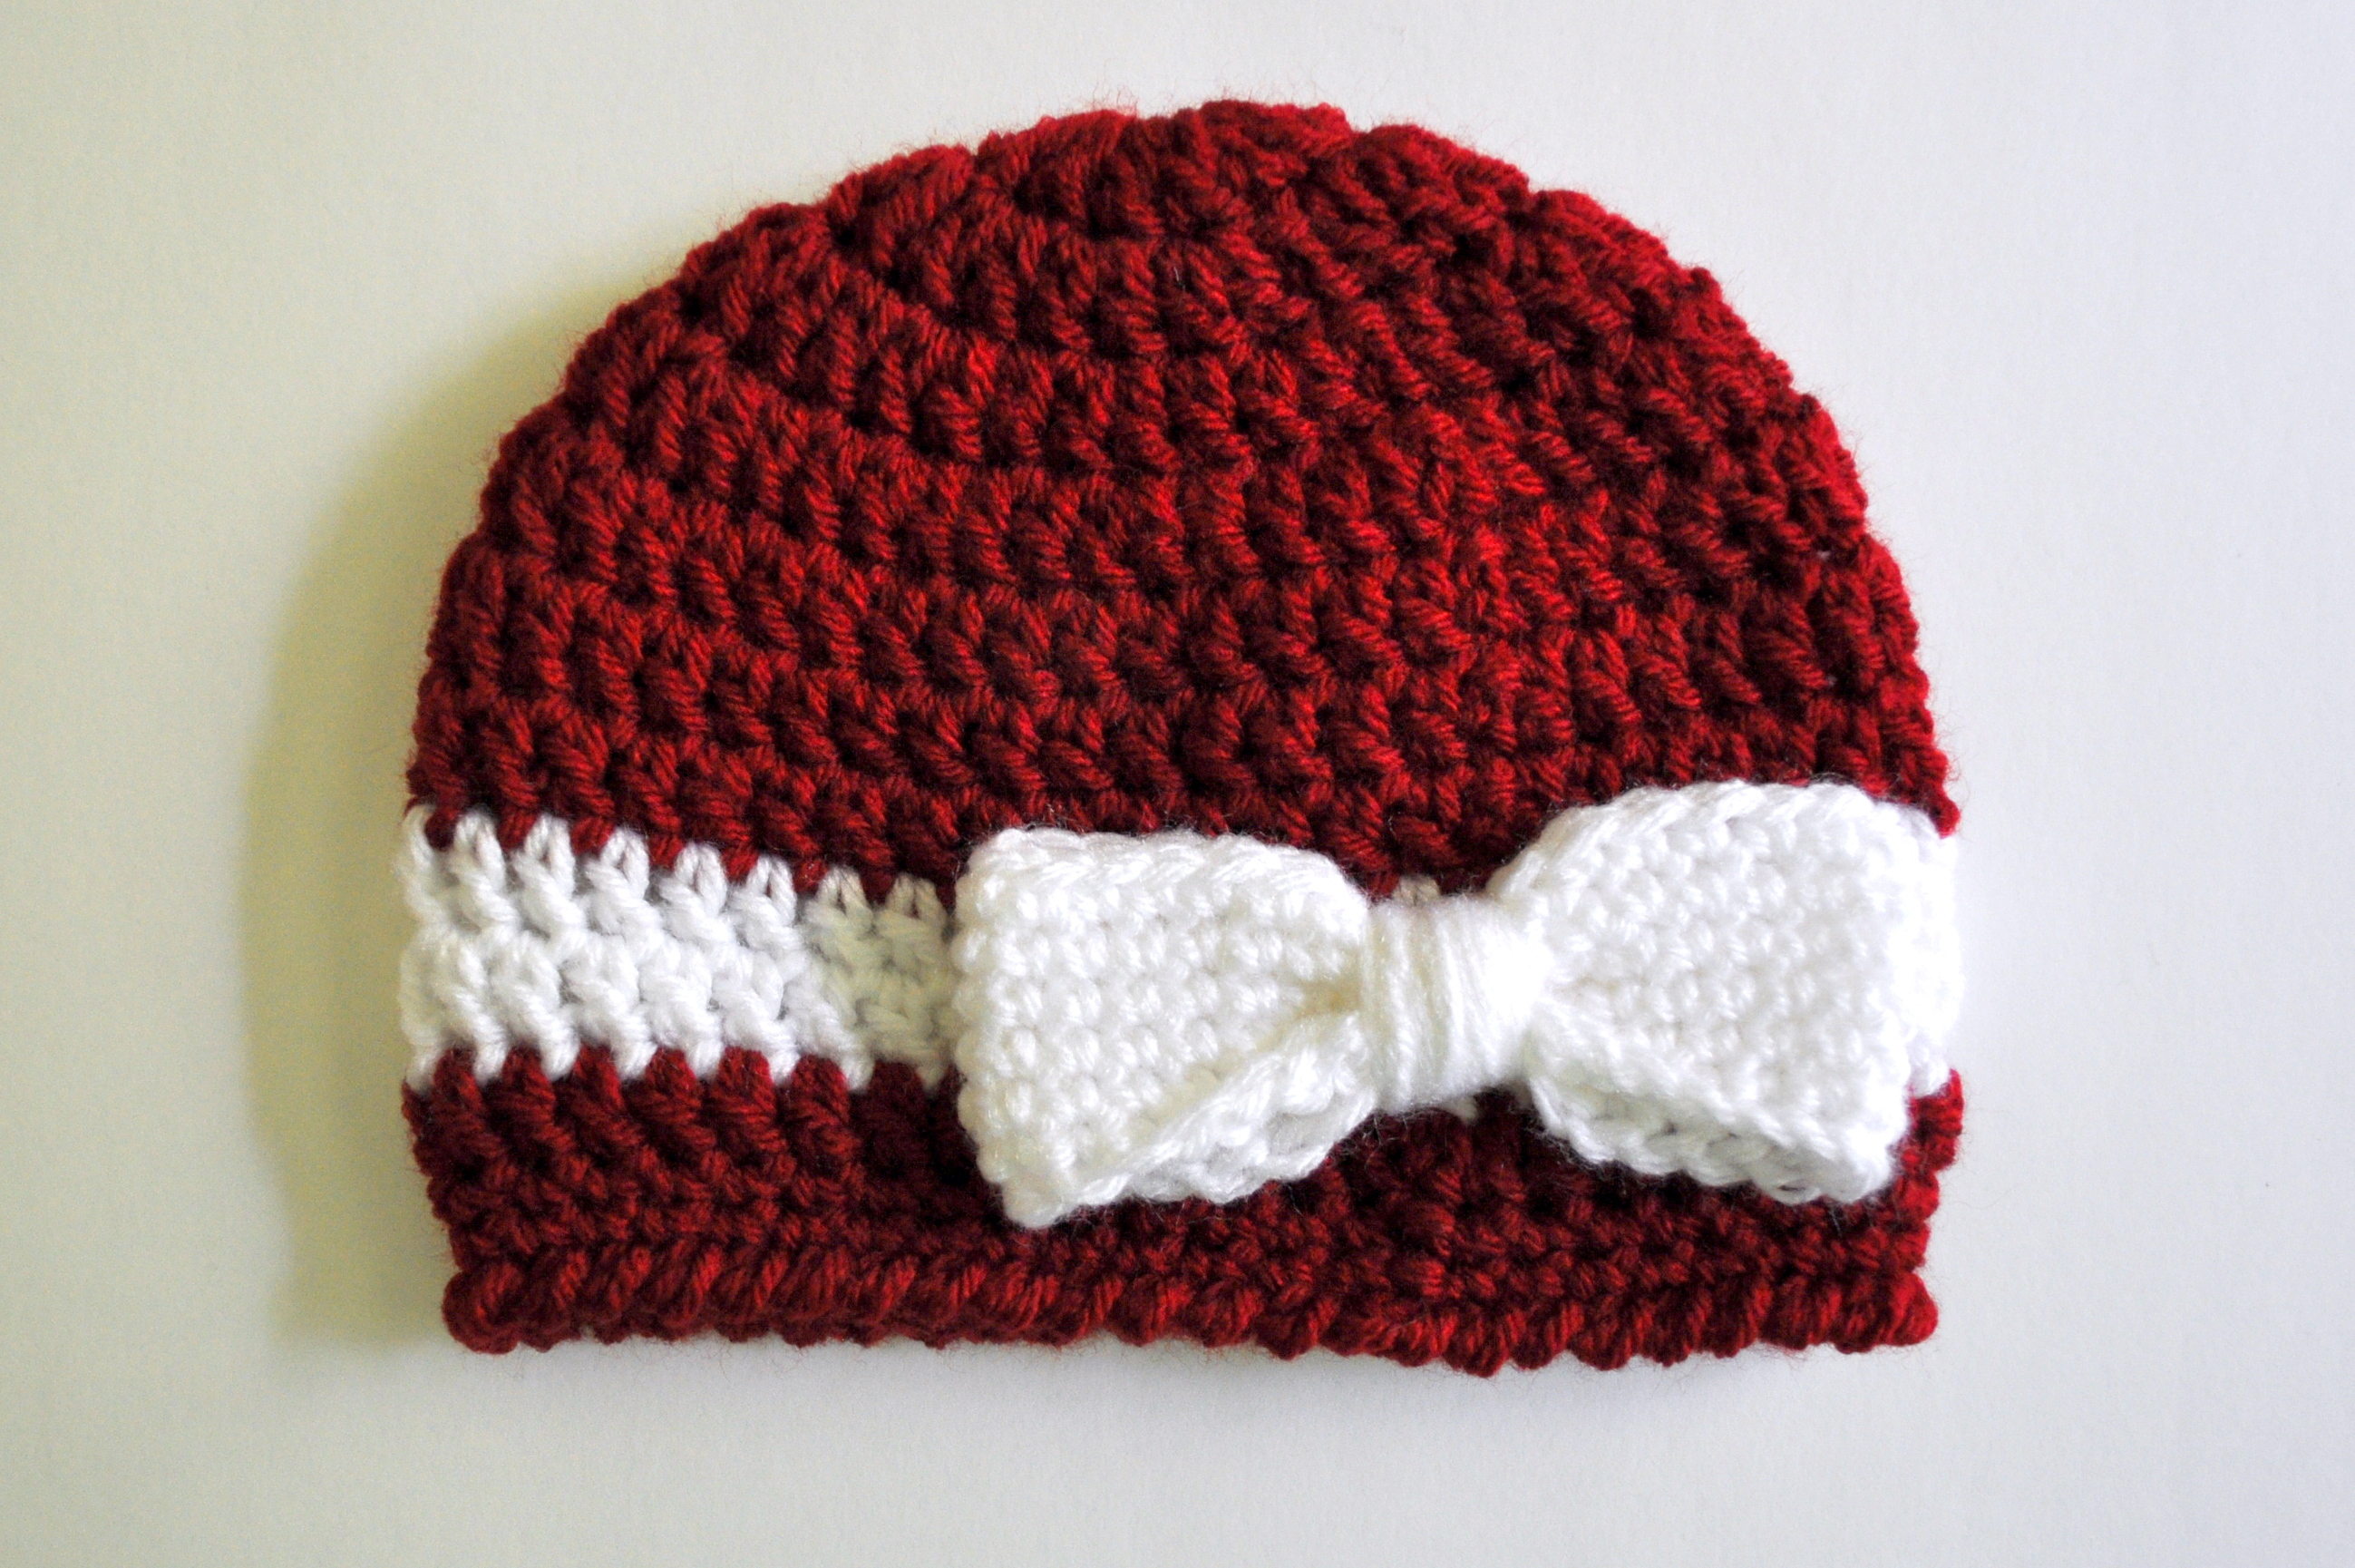 Free Crochet Patterns For Babies : Free Pattern: Crochet Bow and Ribbon Baby Hat Classy Crochet